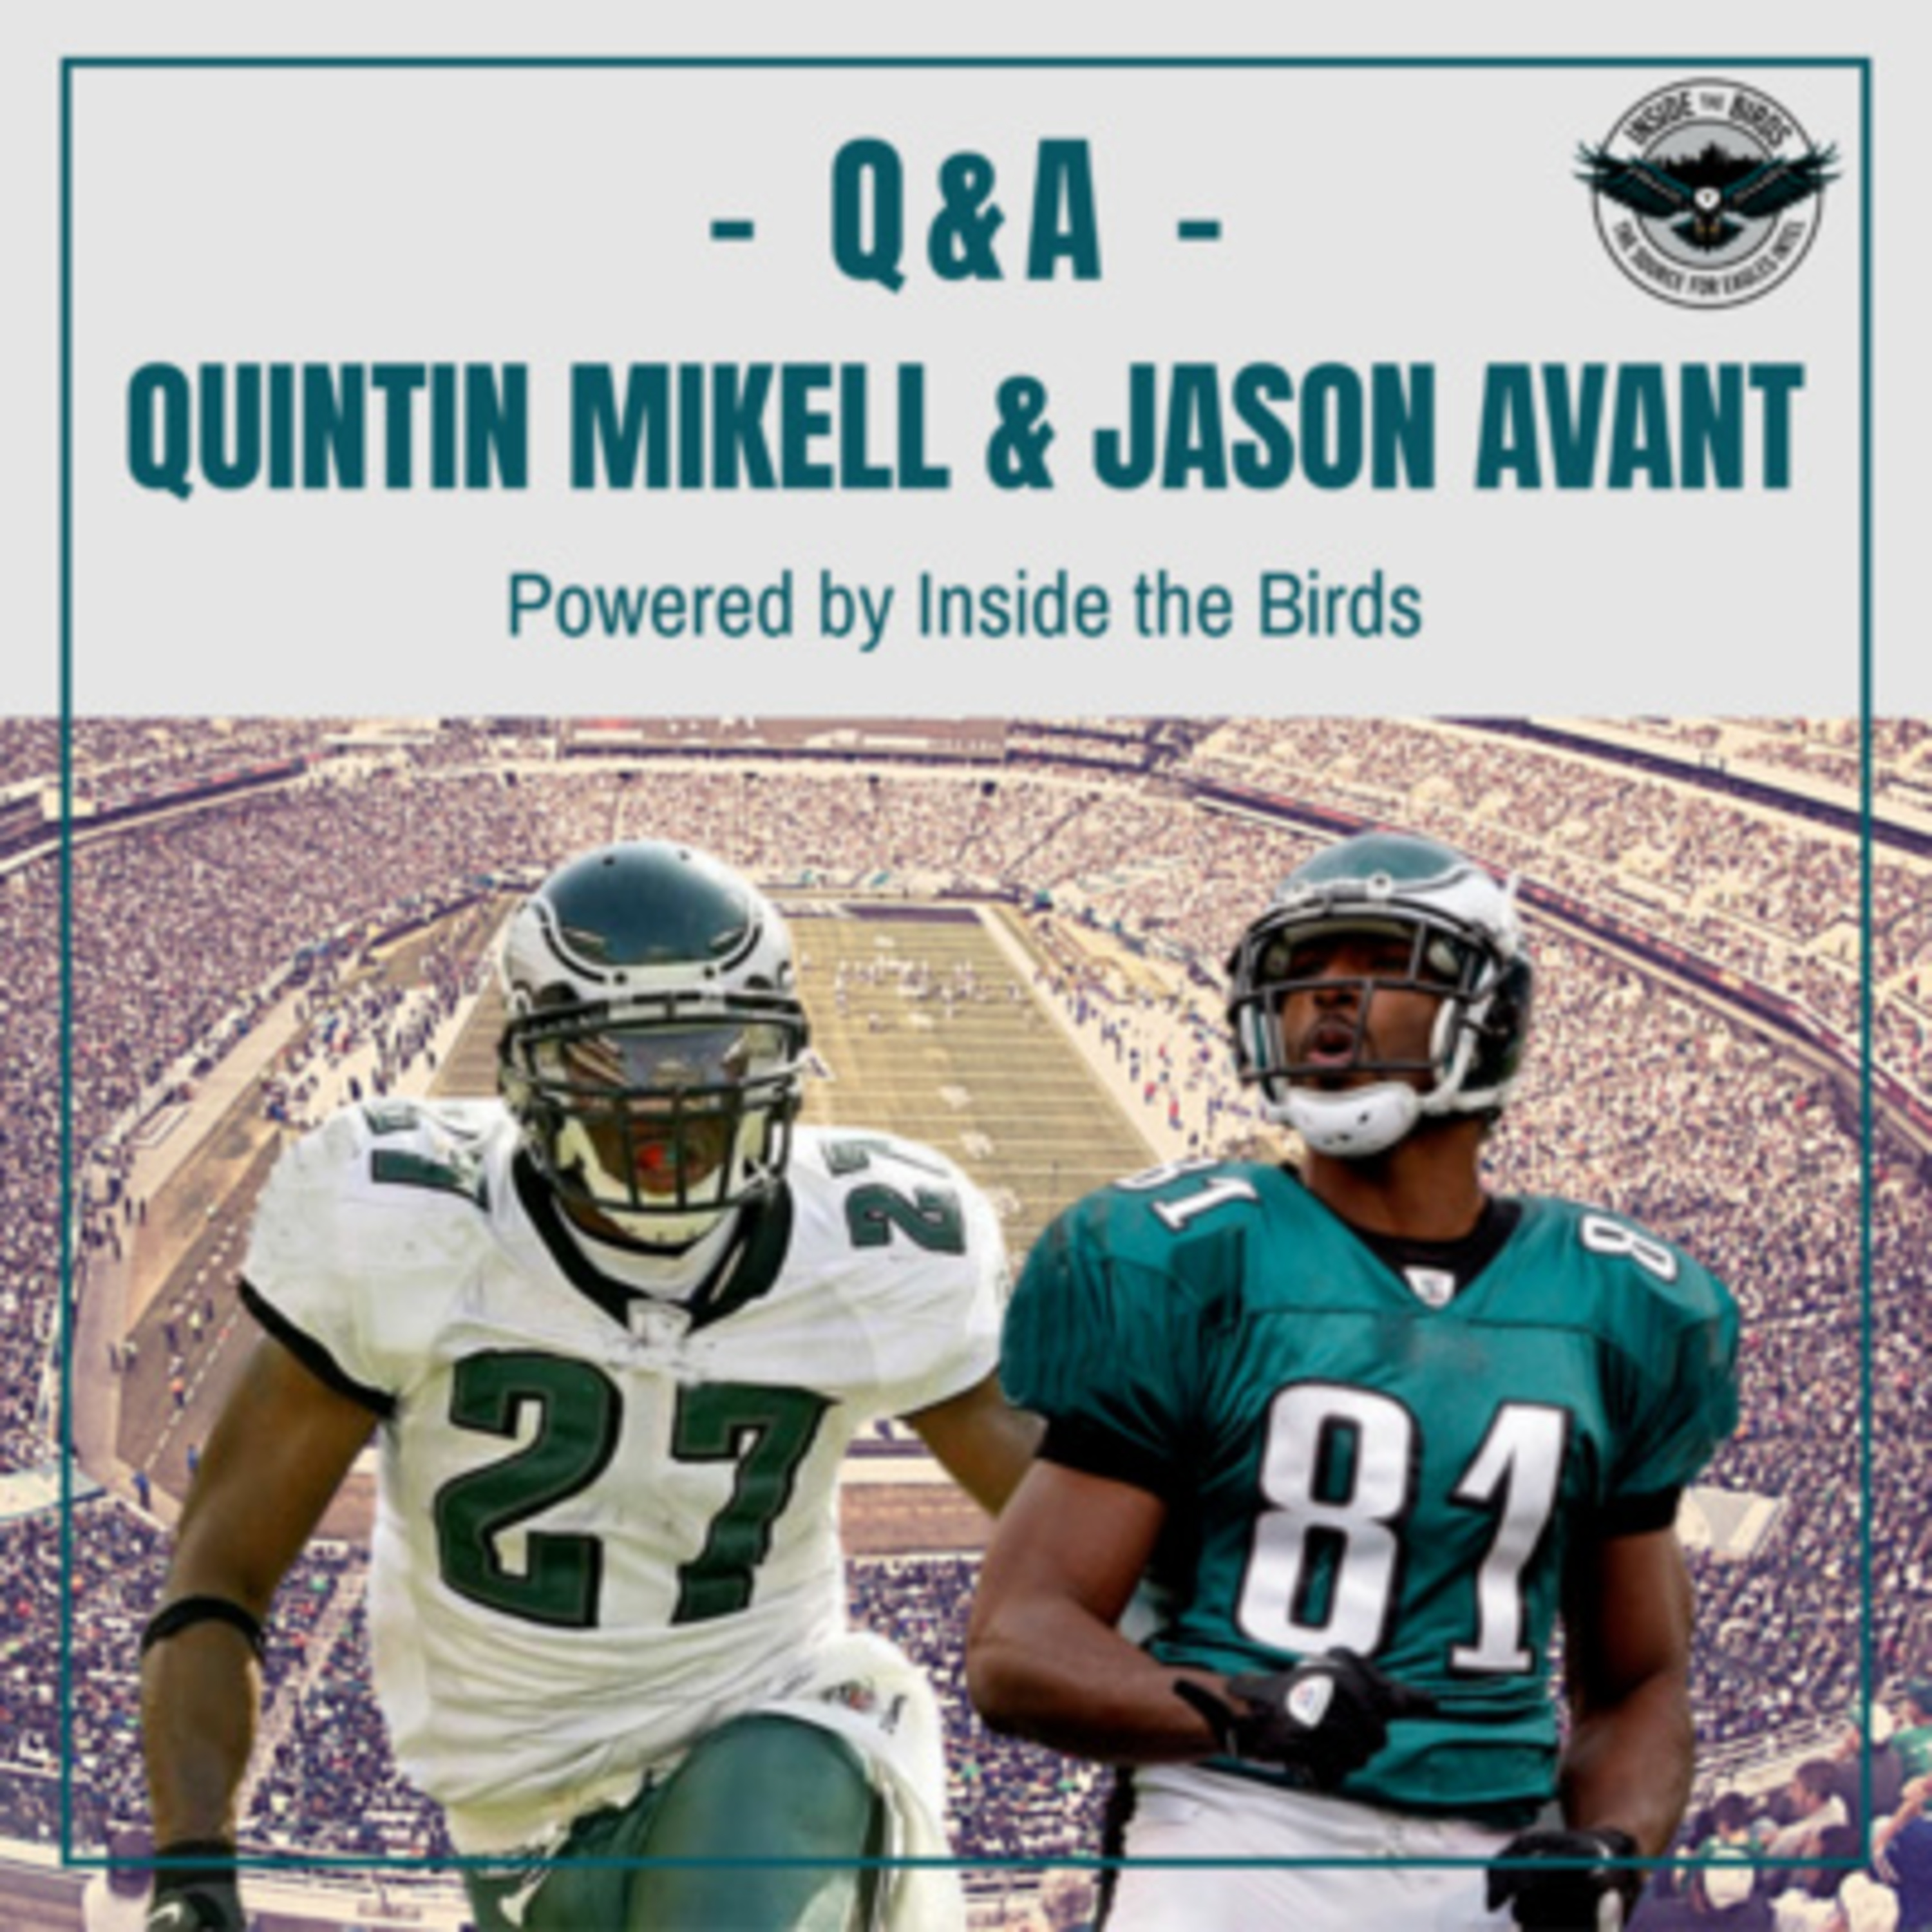 Do Right By Ertz   Dad, Stop Selling My Jersey   You. Must. Learn.   Drunk Dialed?   Q&A With Quintin Mikell & Jason Avant